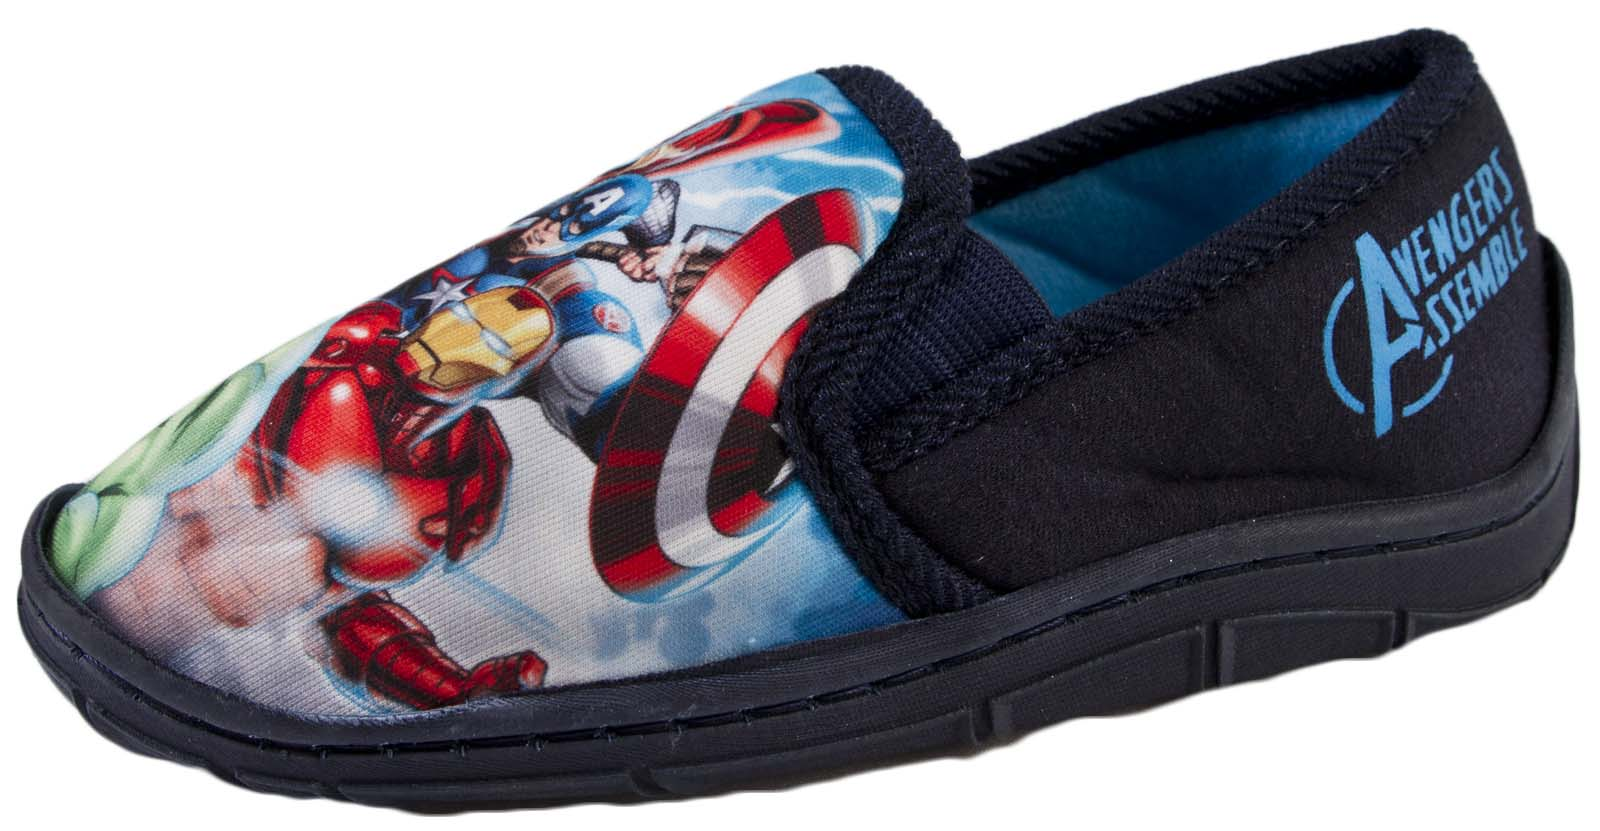 He'll enjoy taking to the water in these Marvel water shoes. Sponsored Links Outside companies pay to advertise via these links when specific phrases and words are searched.